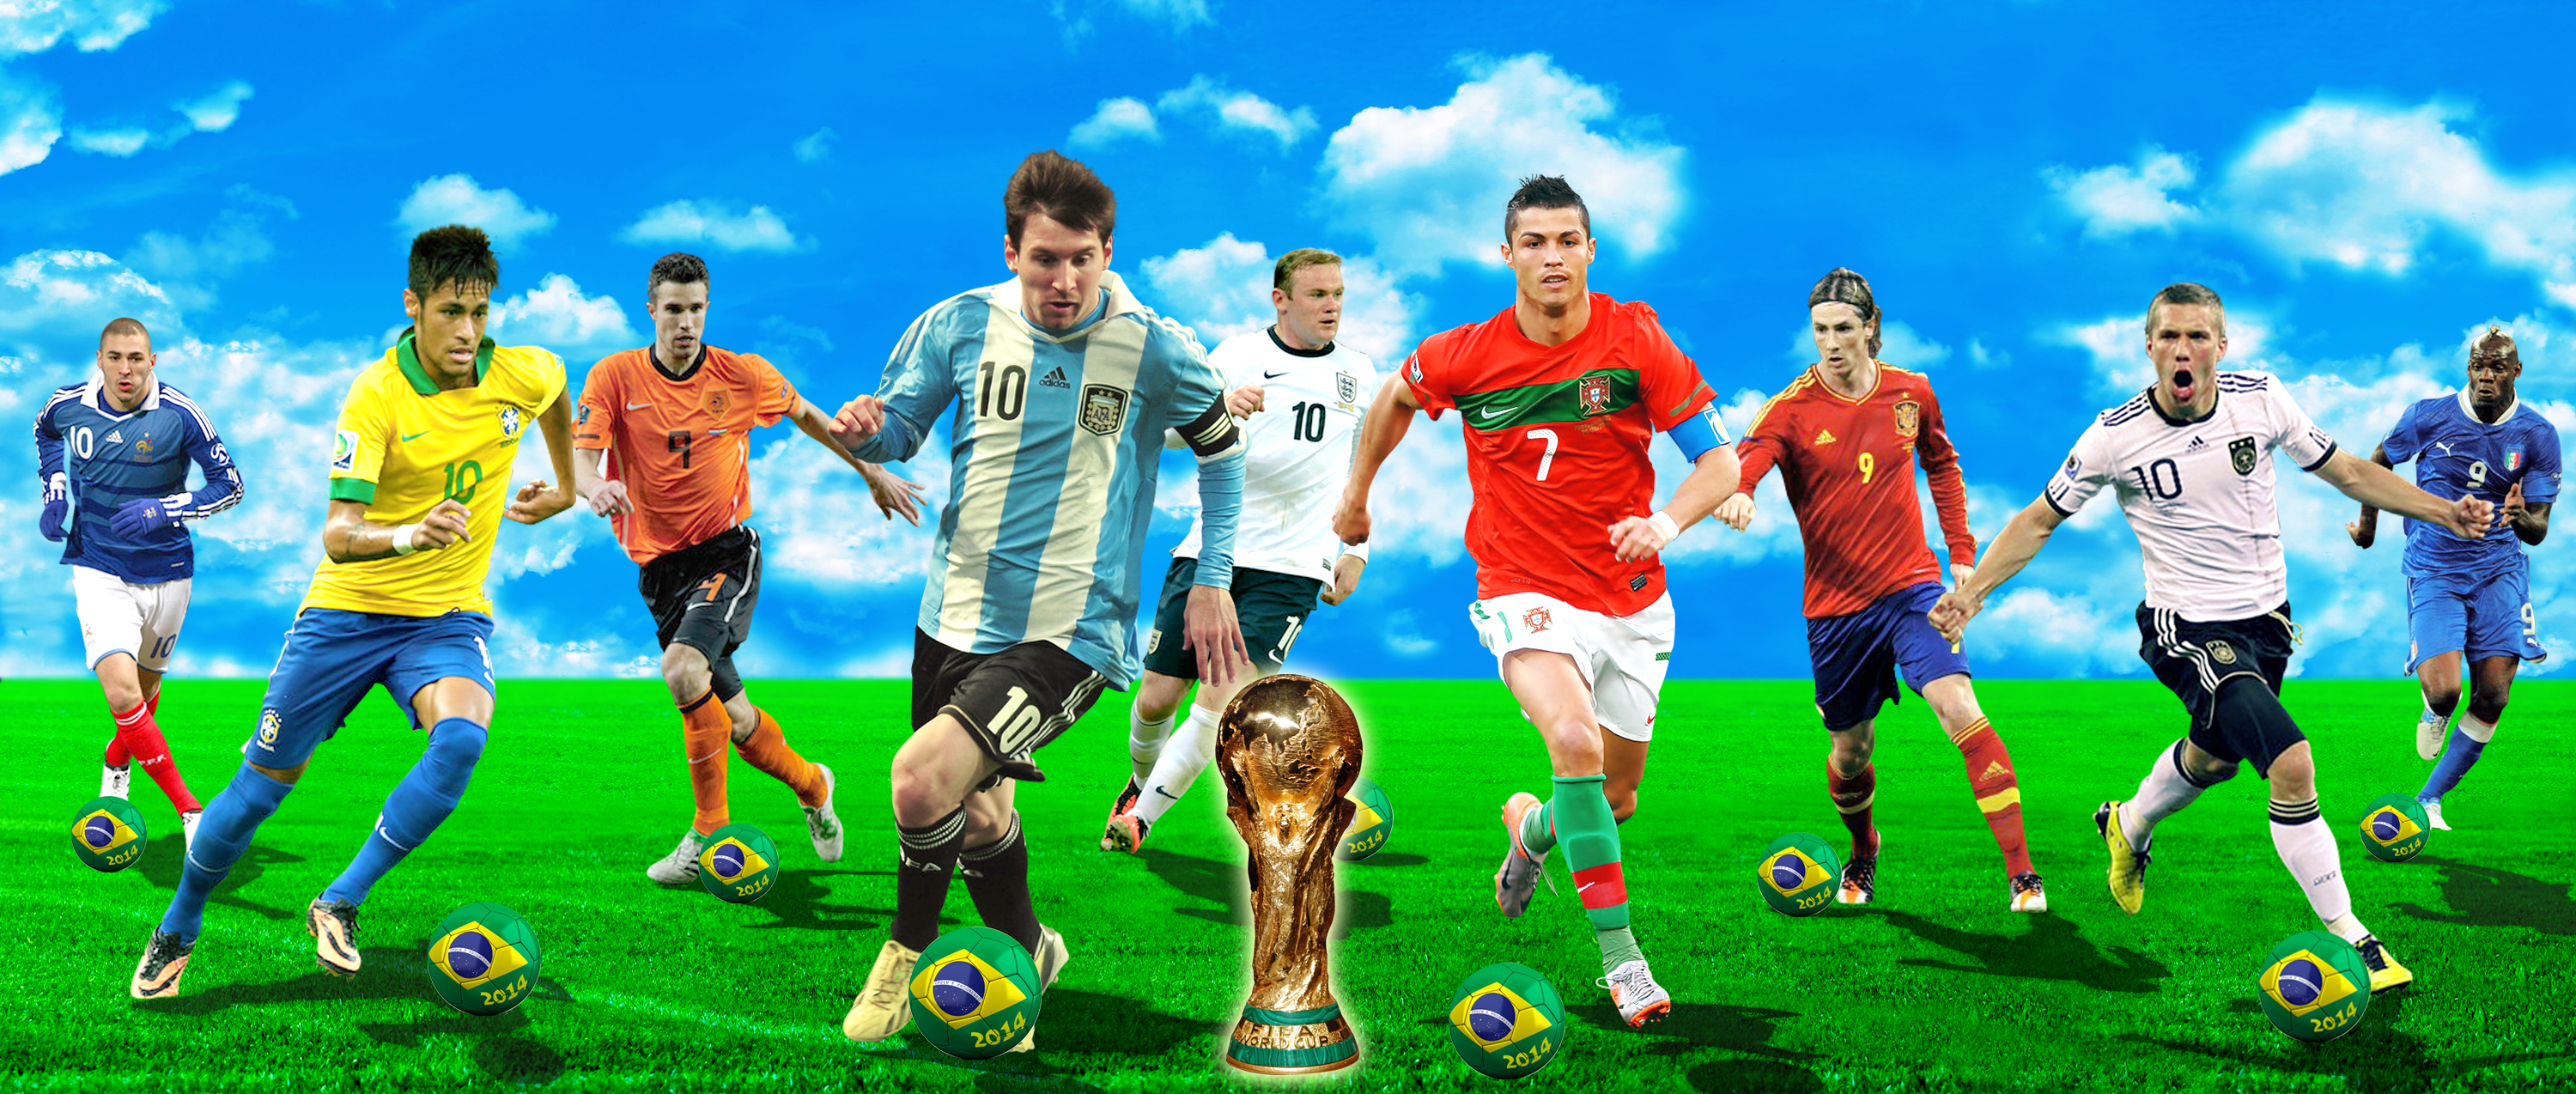 the fifa world cup essay Economic impacts of 2014 fifa world cup brazil introduction the fifa world cup, also called as the world cup, is an international association football competition.